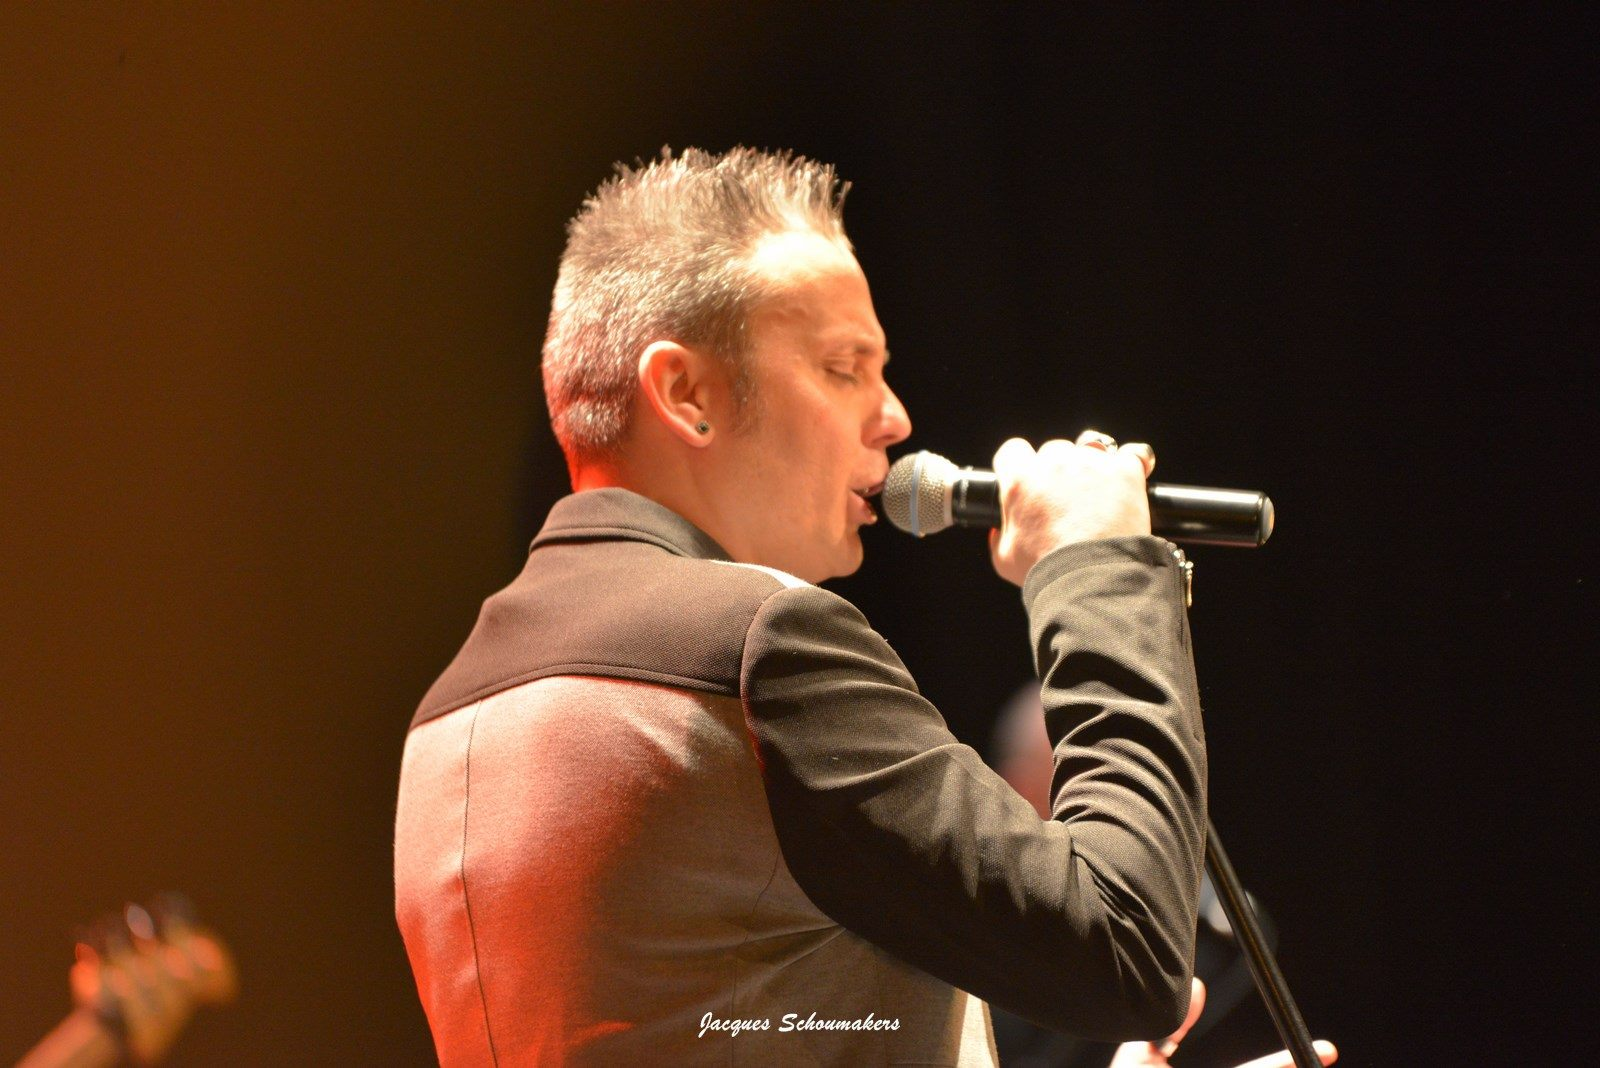 Sebastian-for-elvis-centre-culturel-andenne-jacques-schoumakers-facebook-18